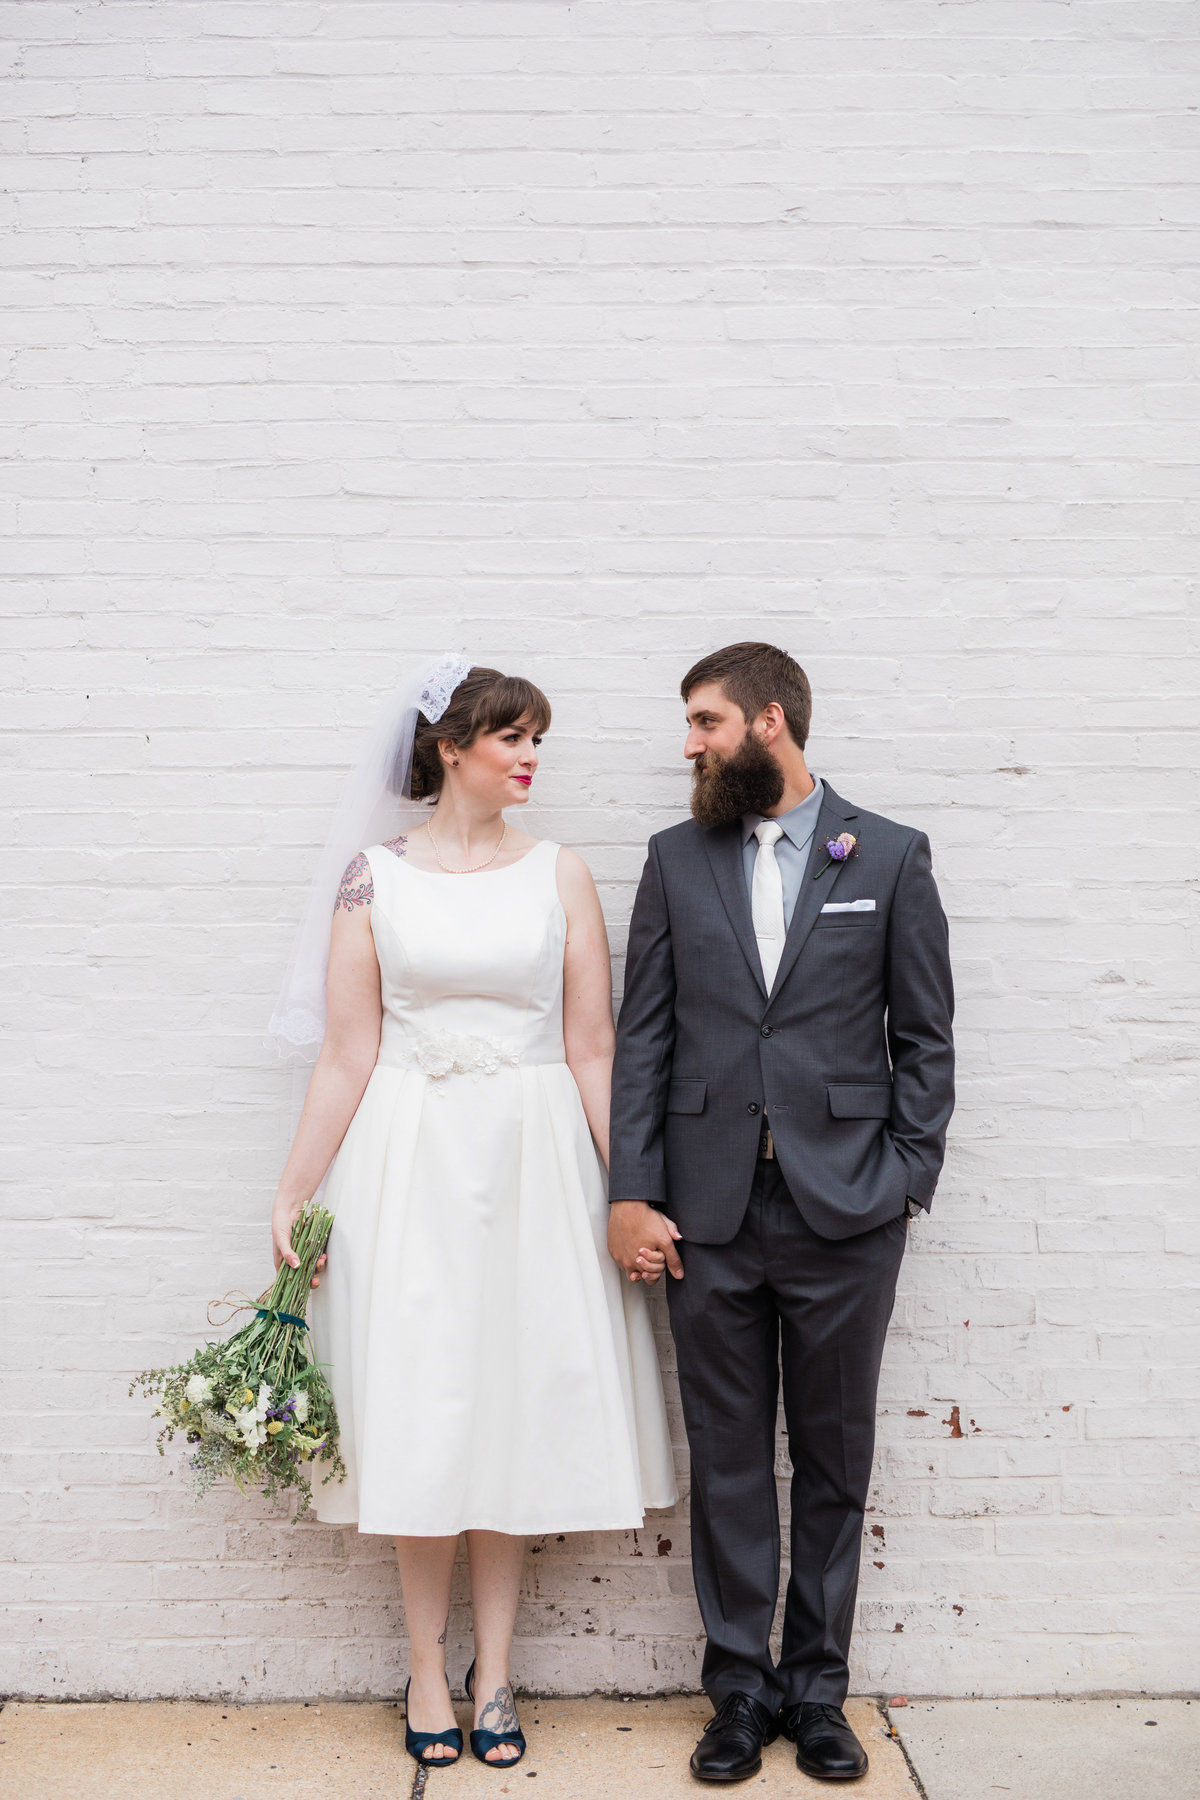 Cherry Lane Vintage Wedding - York PA